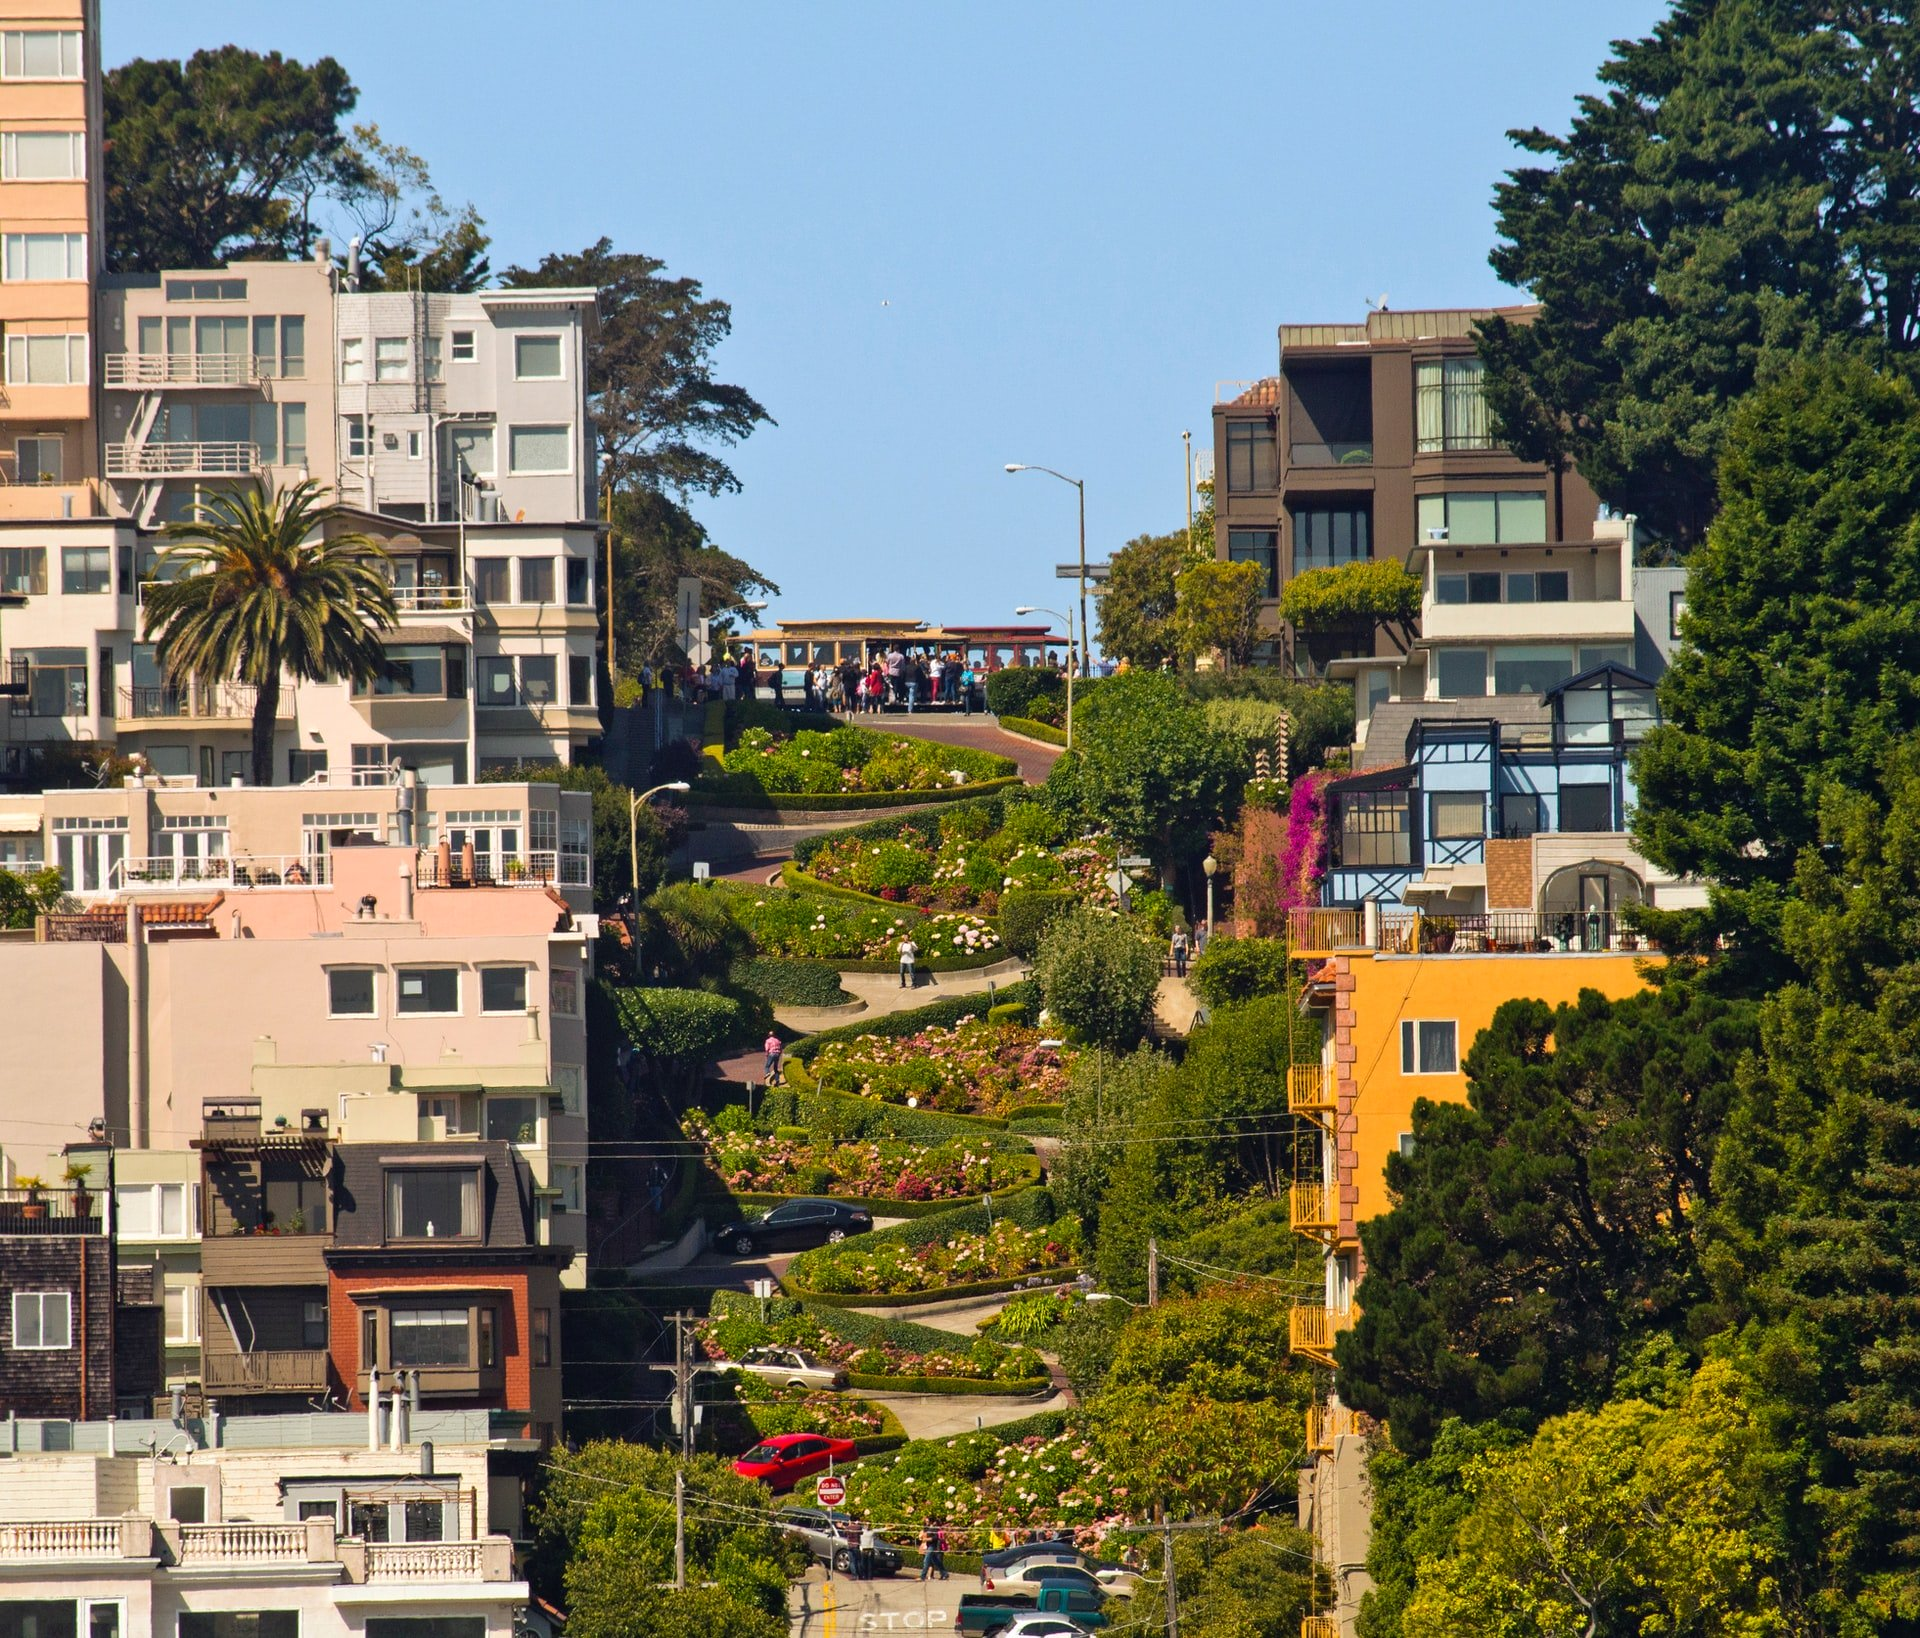 Lombard Street showing the eight turns between houses